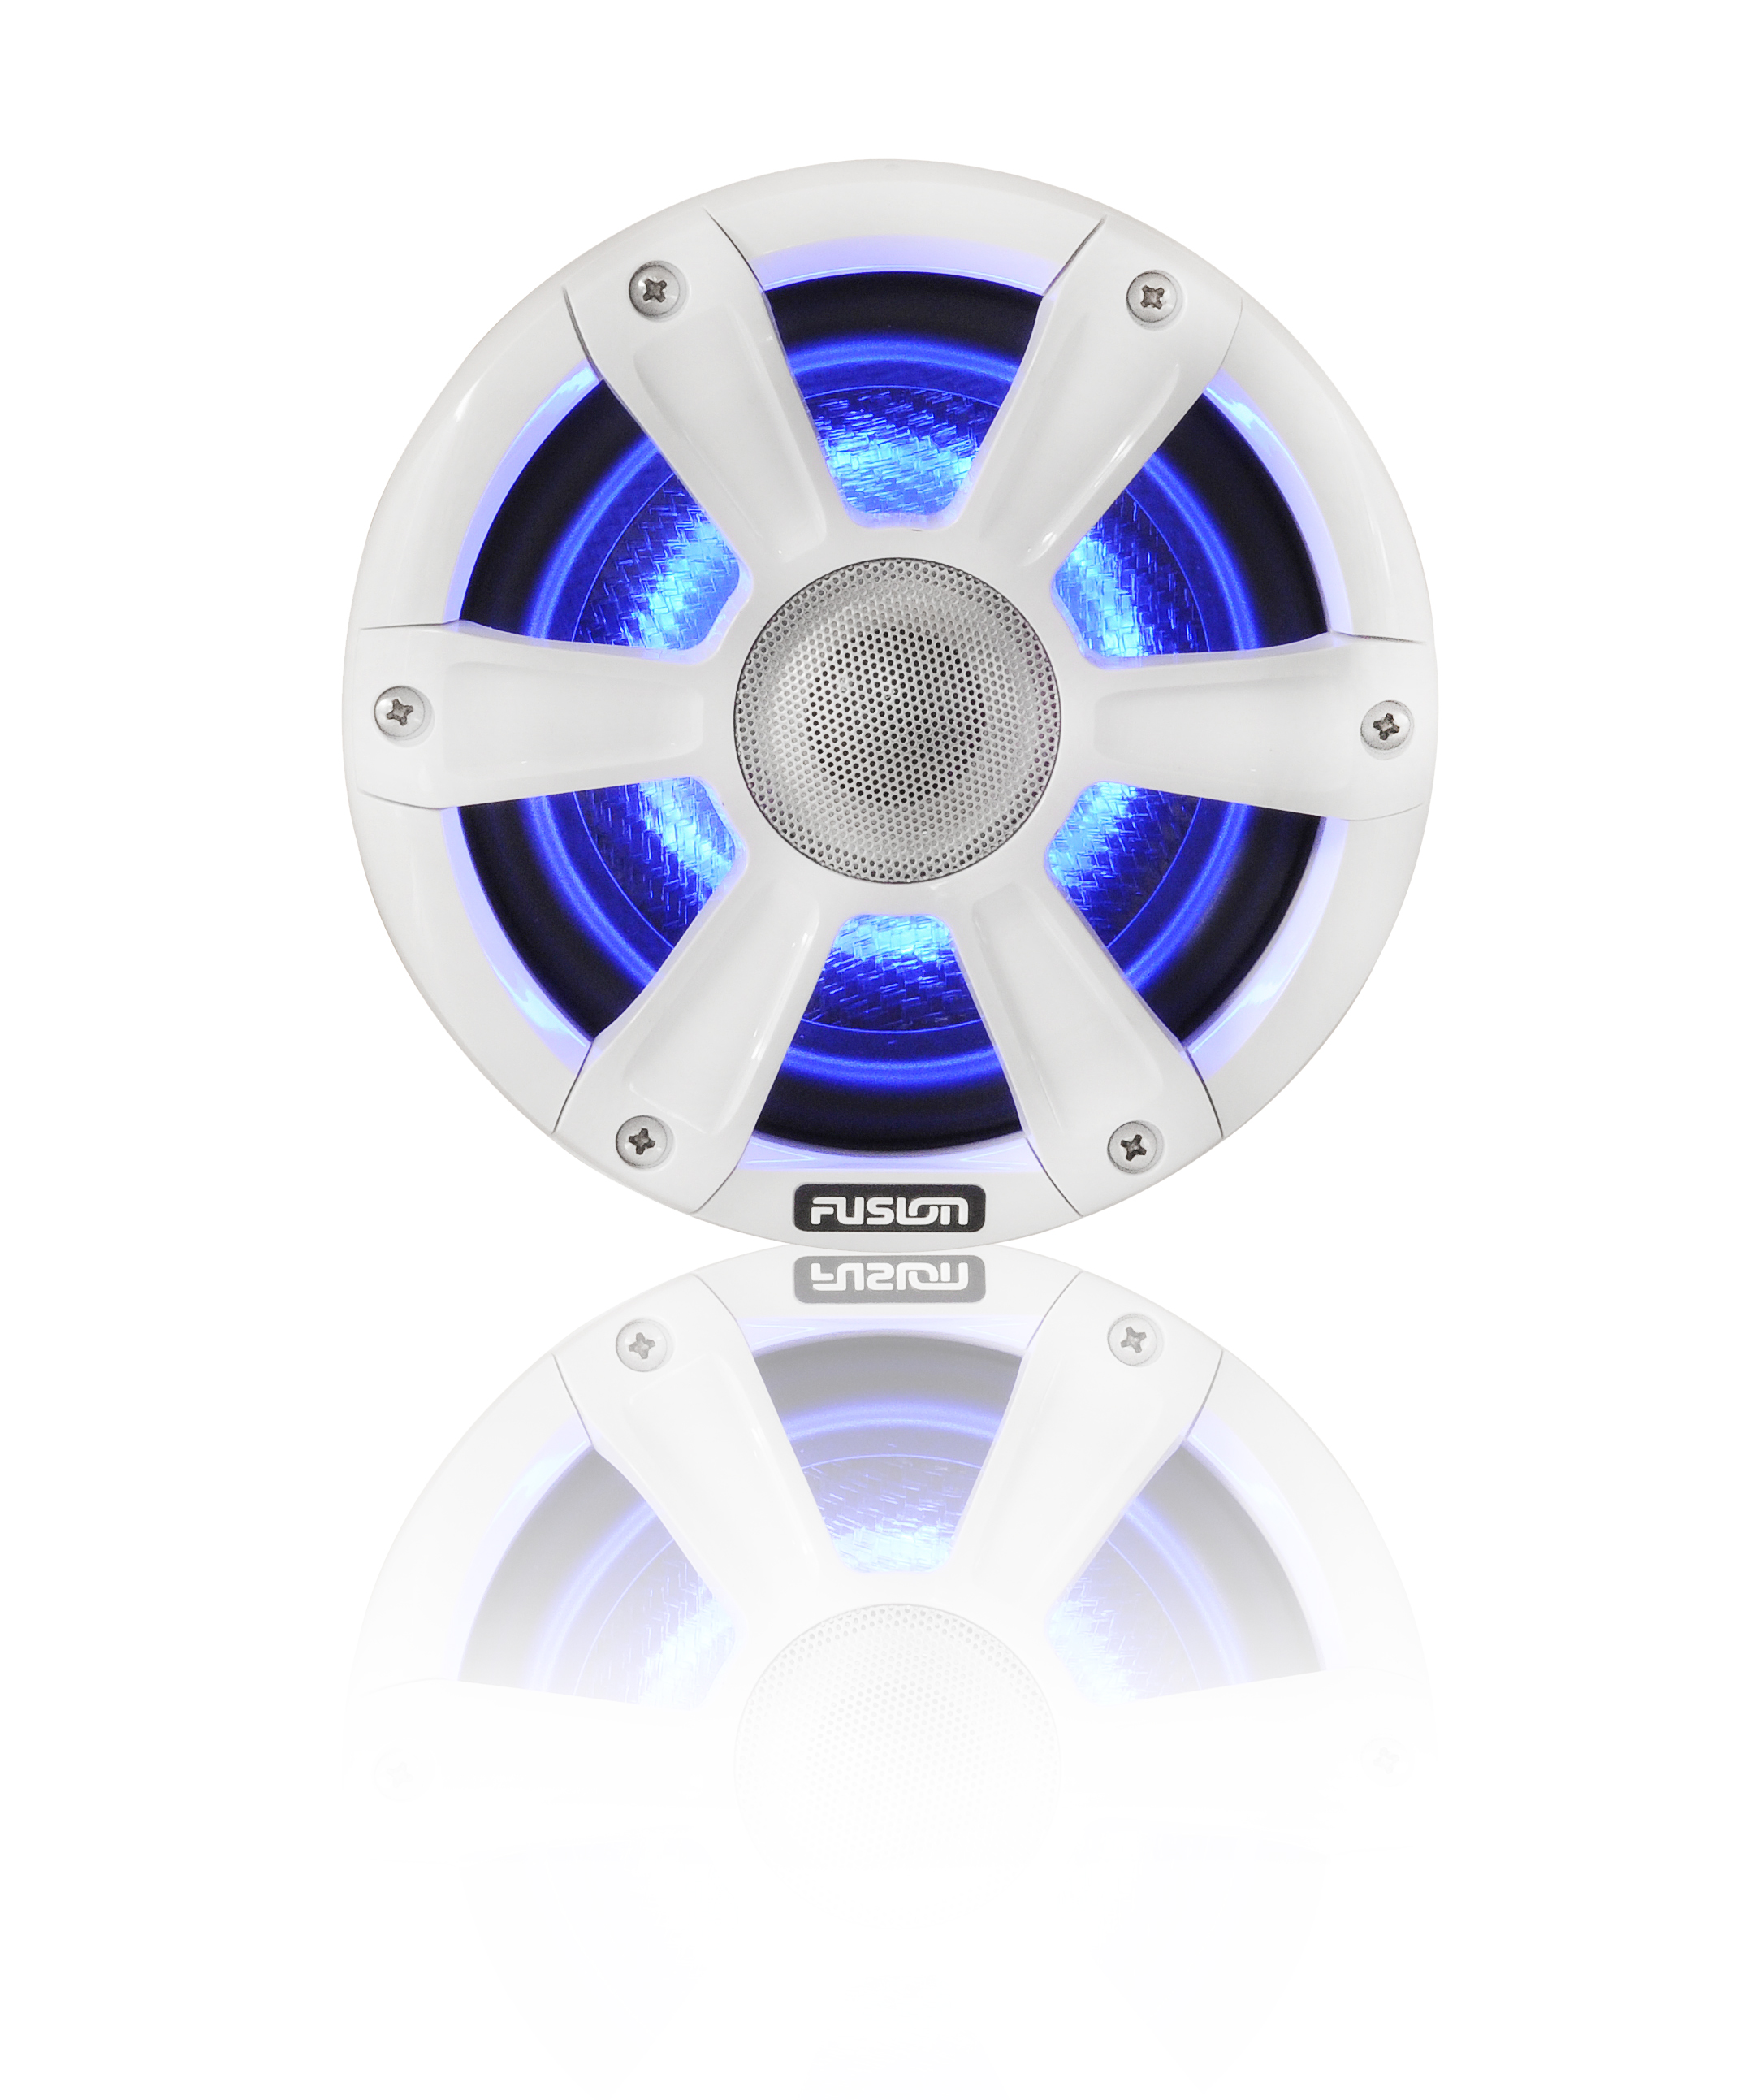 fusion sg fl65spw speaker blue led front